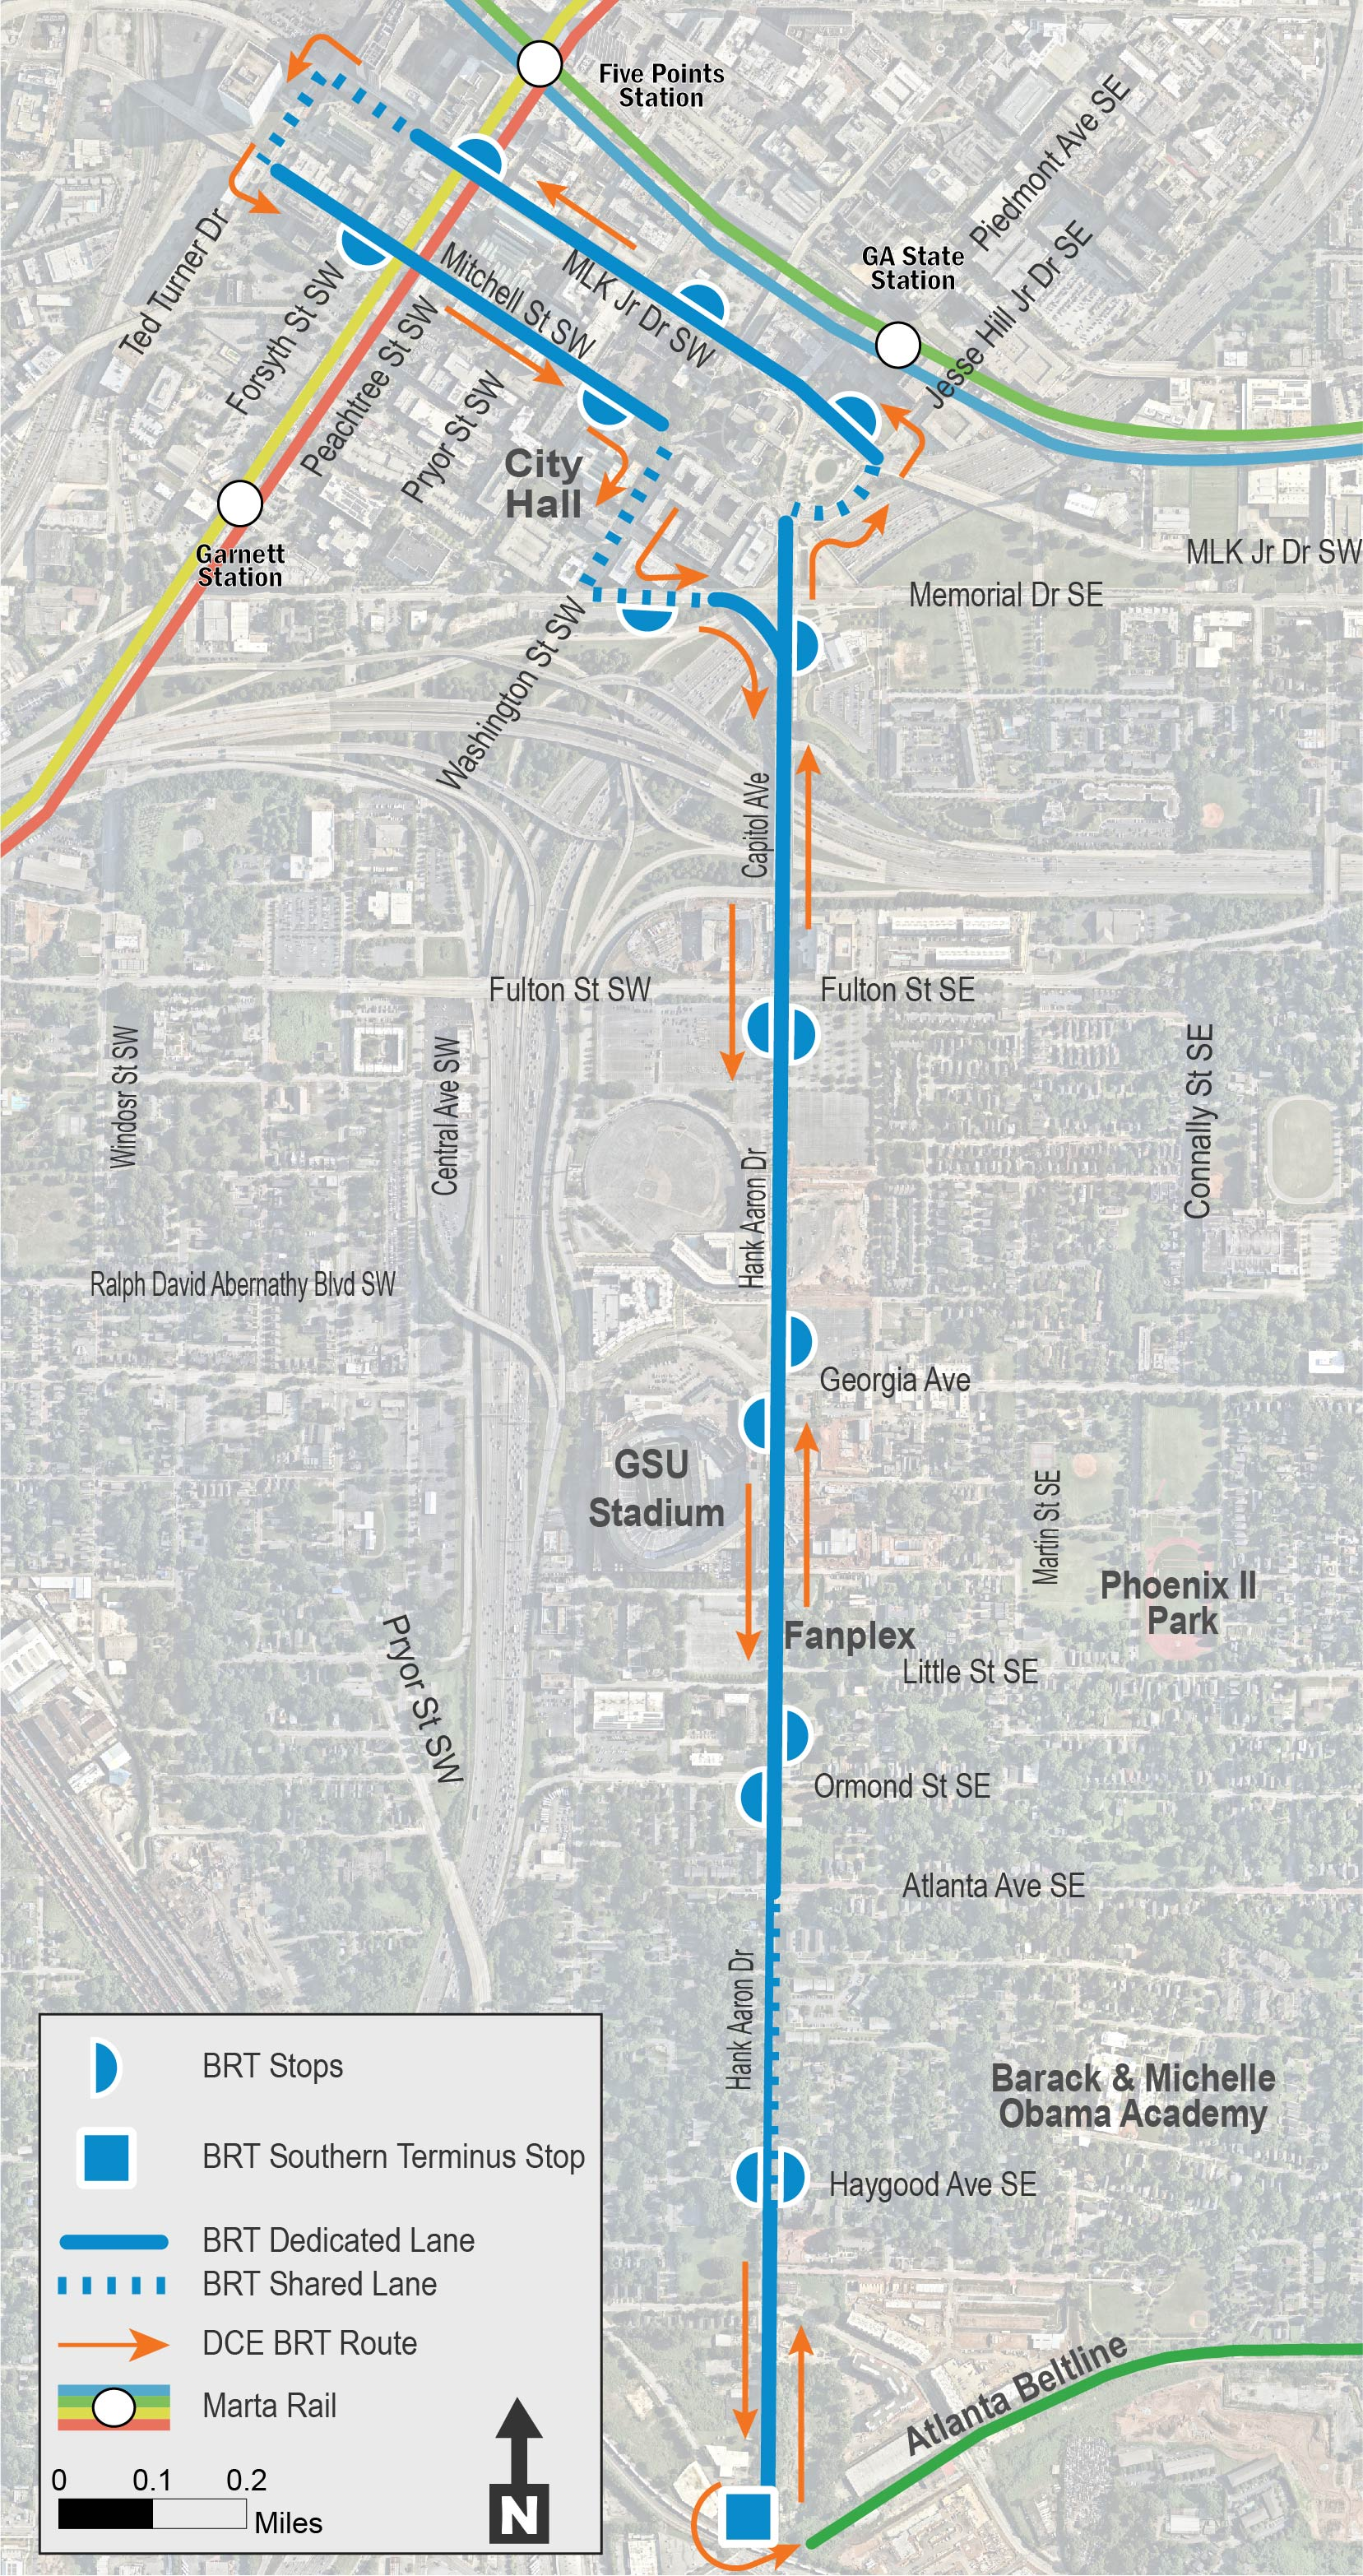 Summerhill BRT Route Map (review the following image and provide comments below)